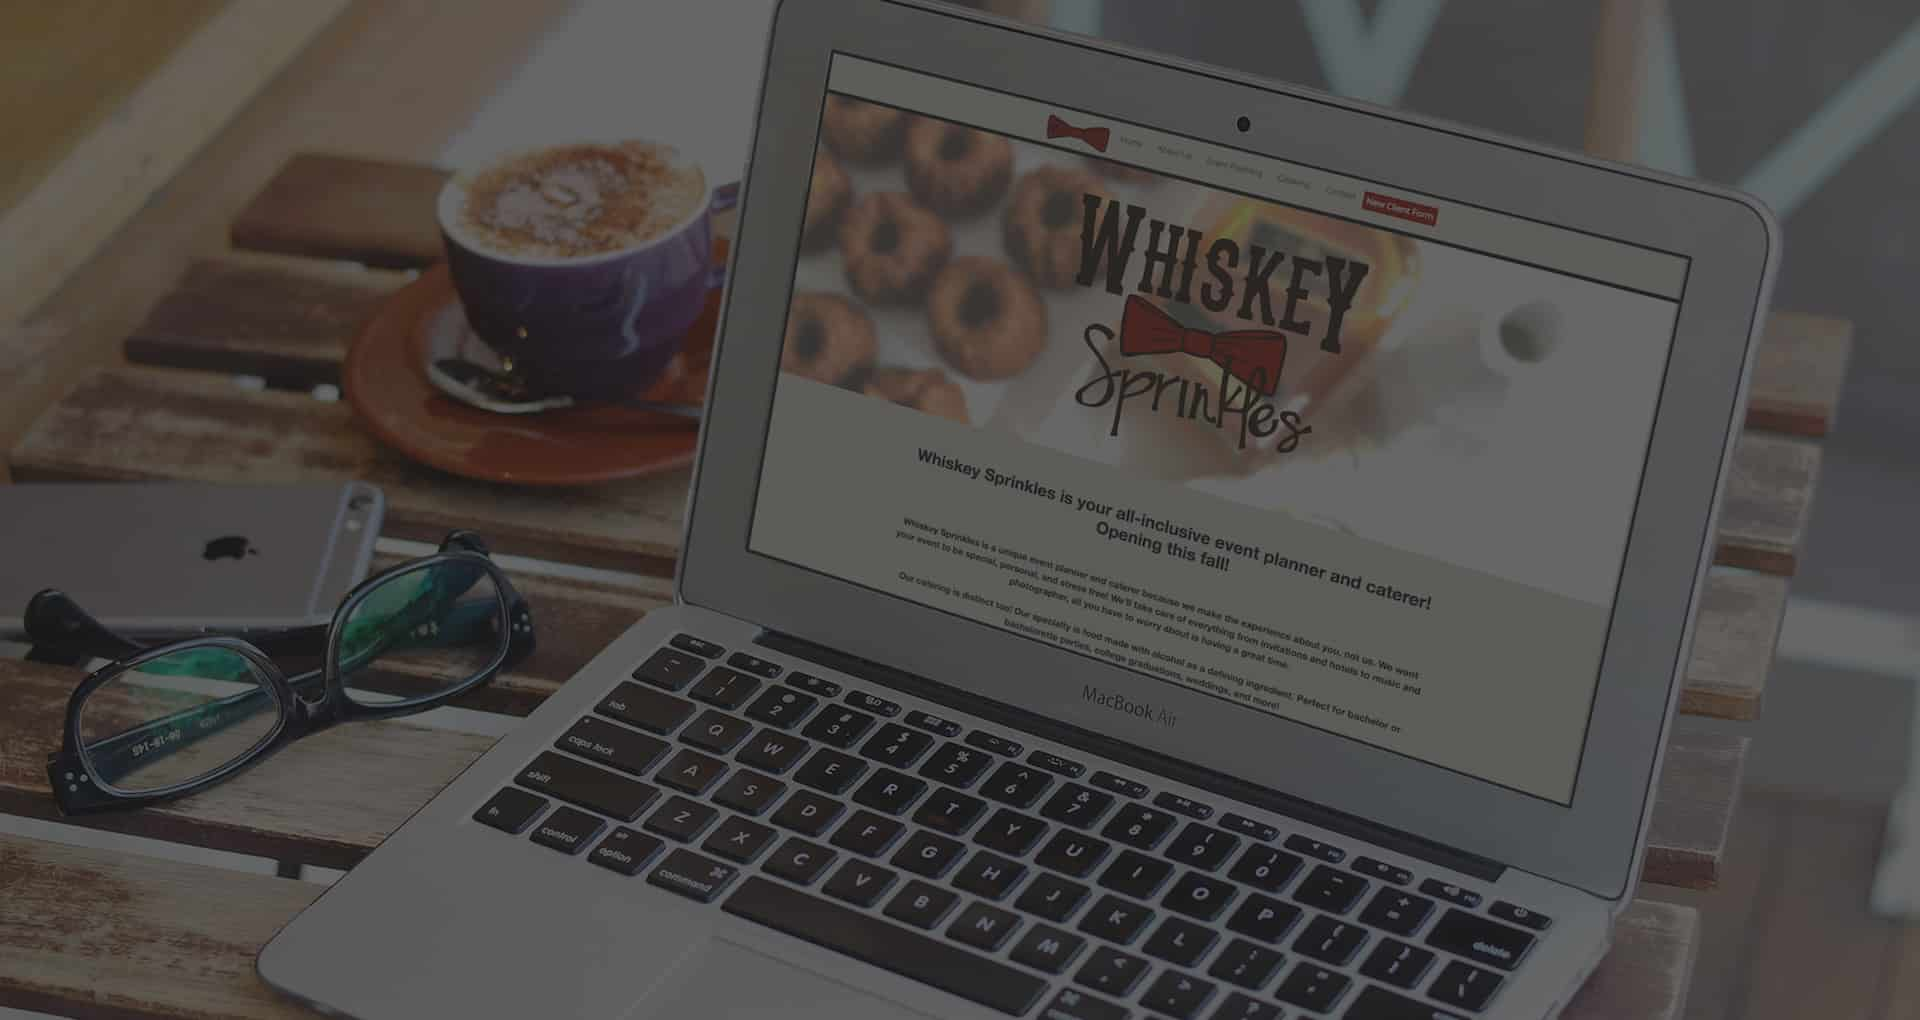 Wordpress Website Design in Austin, Texas- Enlightened Owl Digital